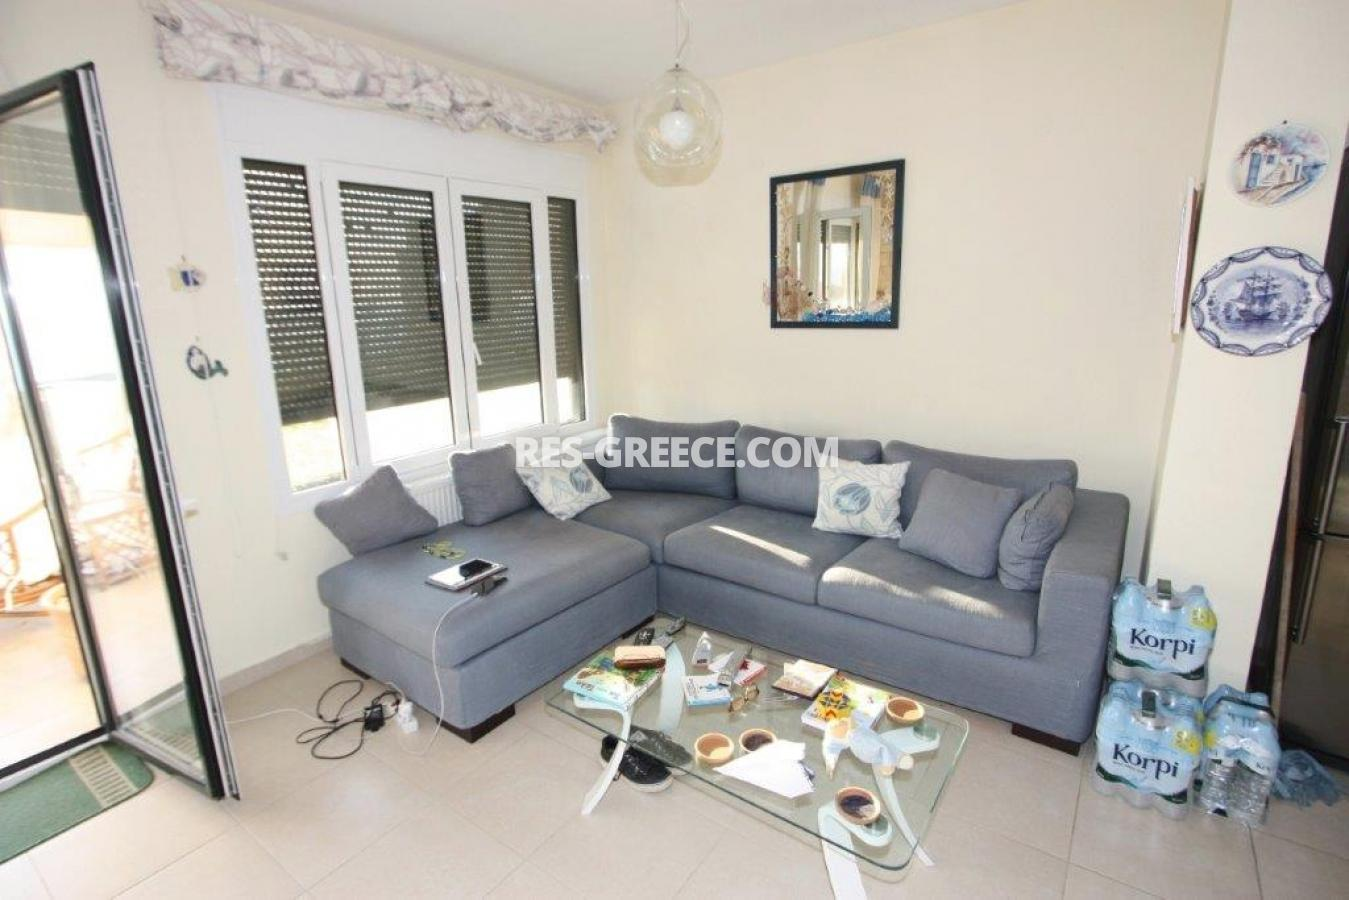 Okialos, Halkidiki-Kassandra, Greece - house for sale in the complex with pool and panoramic sea view - Photo 3